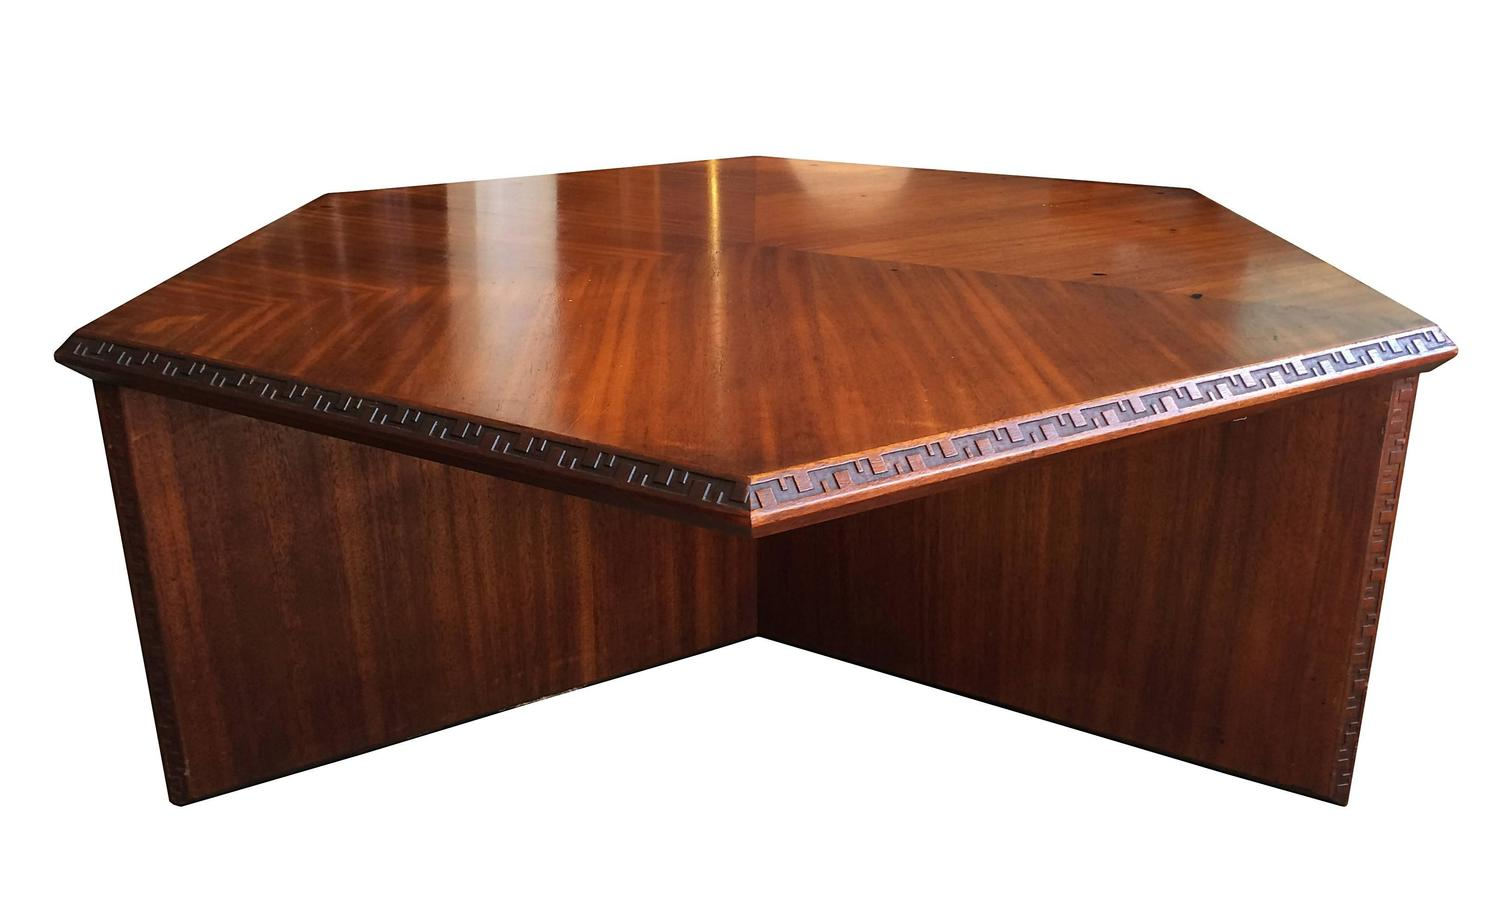 Mid Century Modern Coffee Table With Greek Key Detail By Frank Lloyd Wright For Sale At 1stdibs